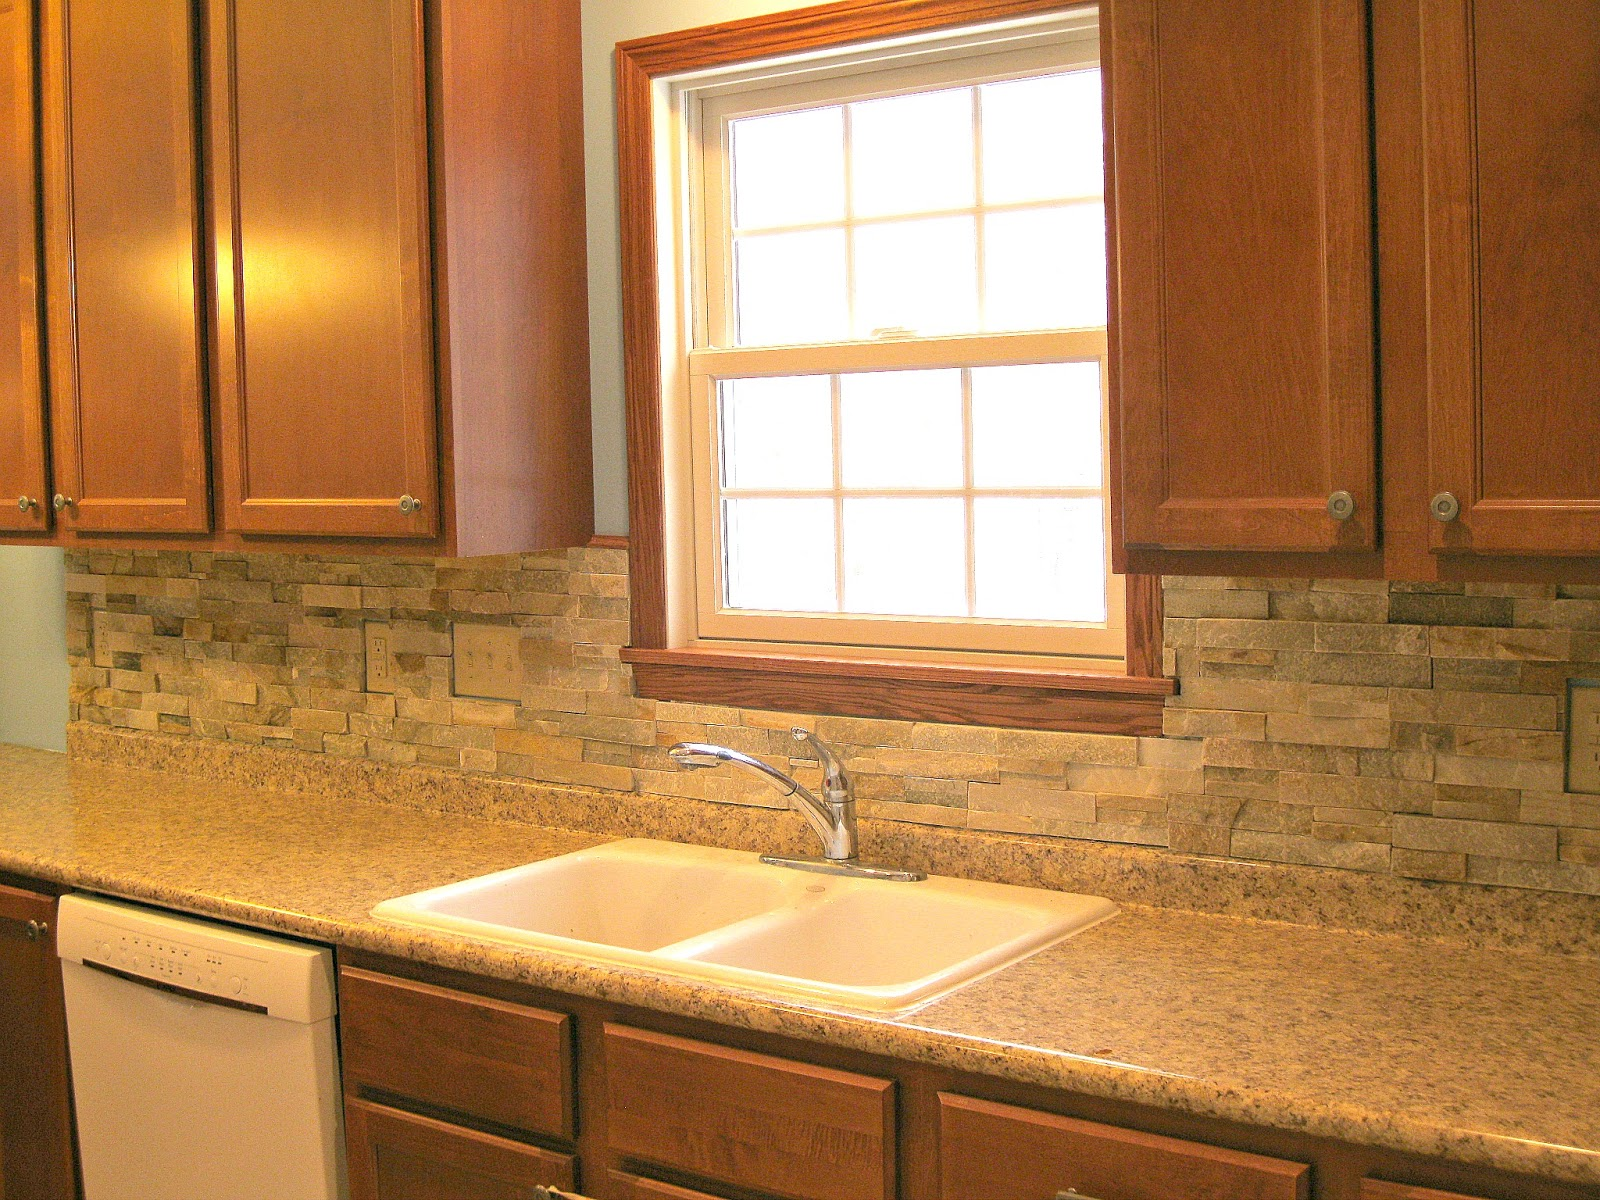 before after kitchen backsplash backsplash kitchen Before After Kitchen Backsplash